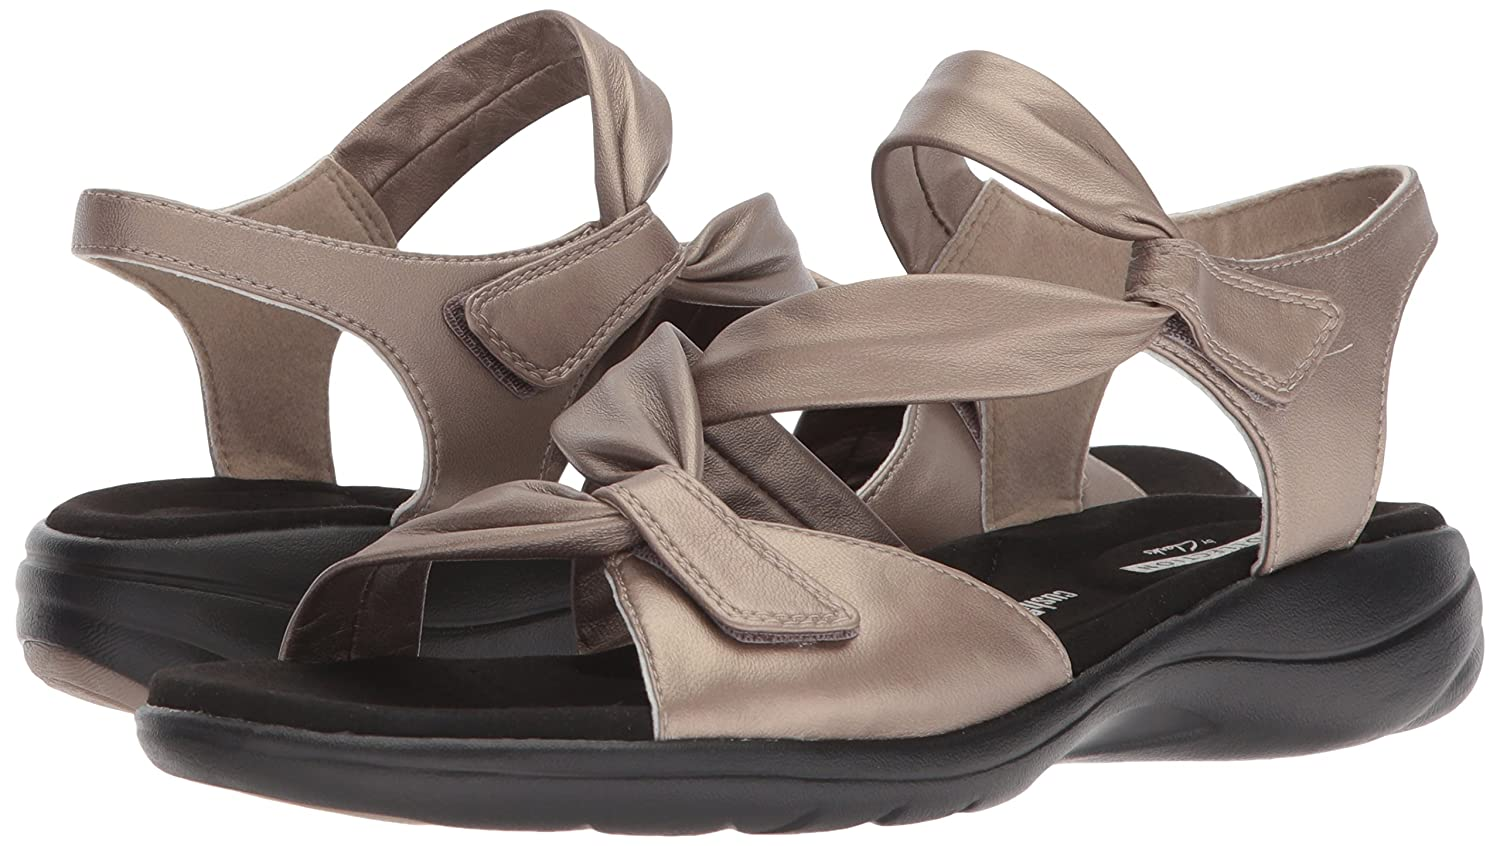 8ce91b893a4 Clarks Women s Saylie Moon Sandal  Buy Online at Low Prices in India -  Amazon.in